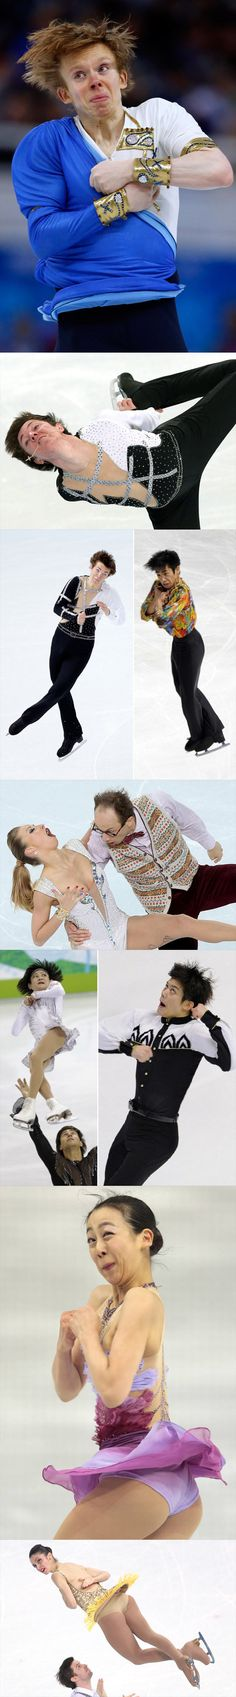 funny-Olympic-figure-skating-faces-ice